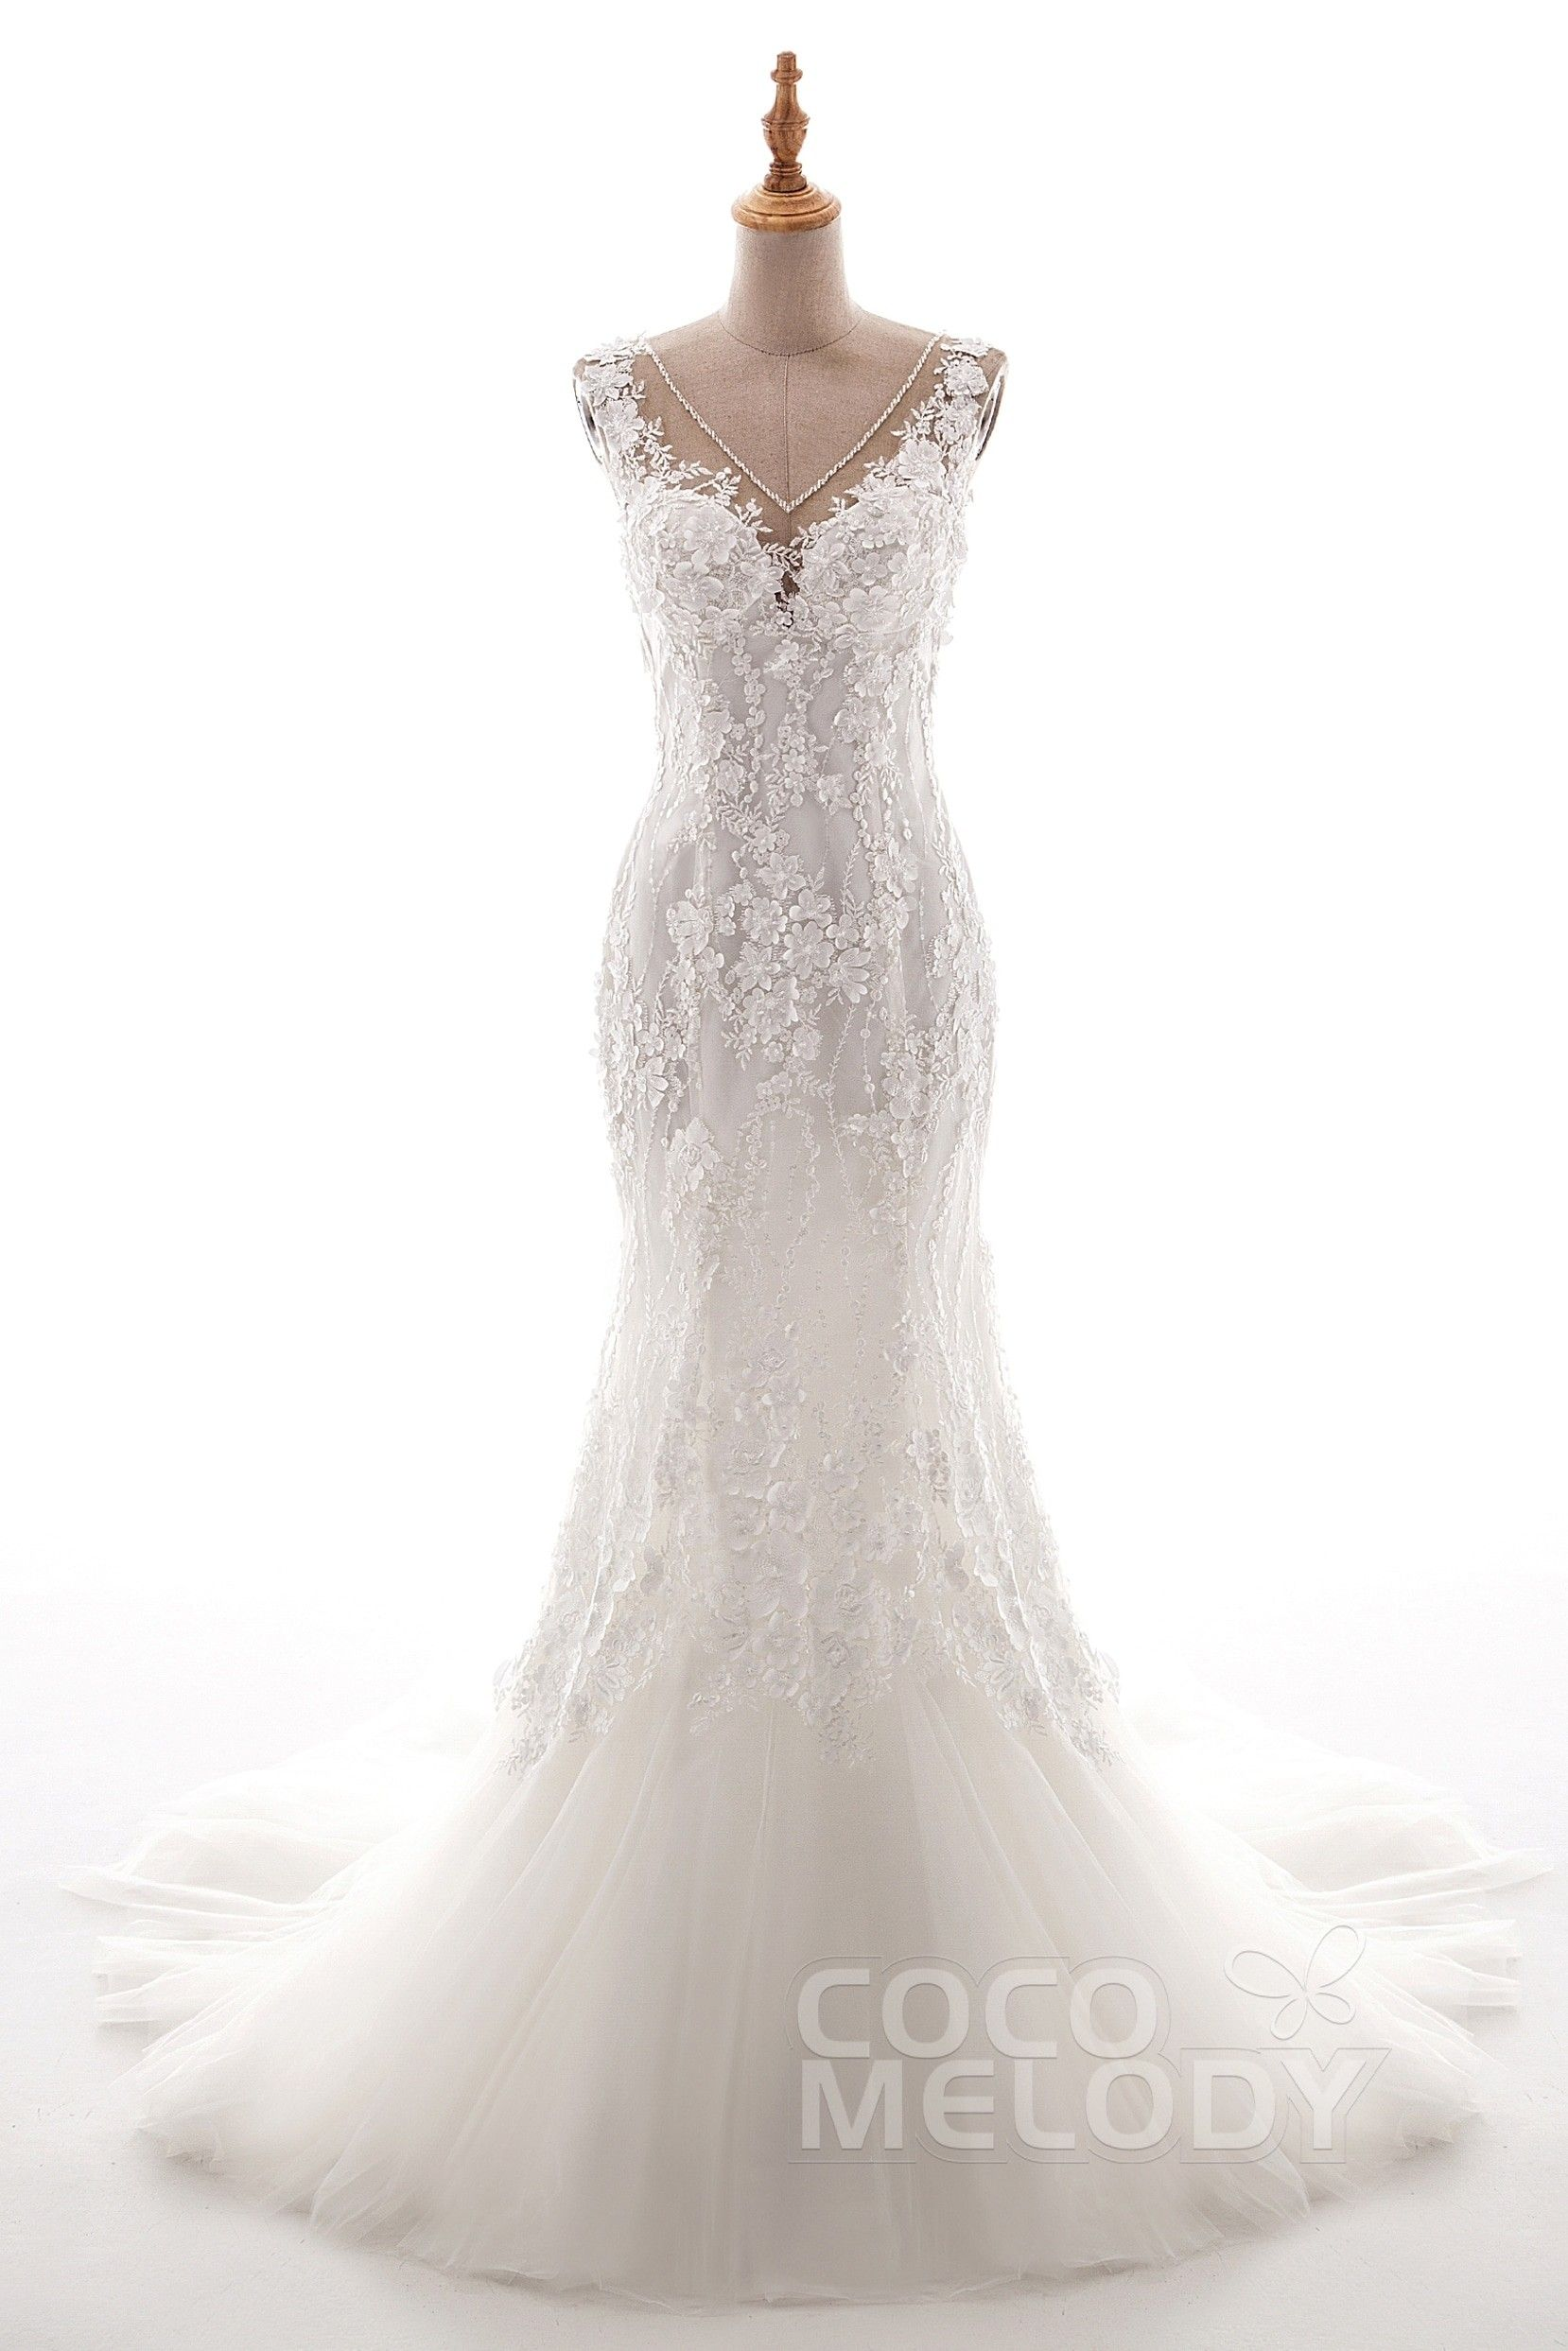 Lace wedding dress with train  TrumpetMermaid Court Train Tulle and Lace Wedding Dress LD  F